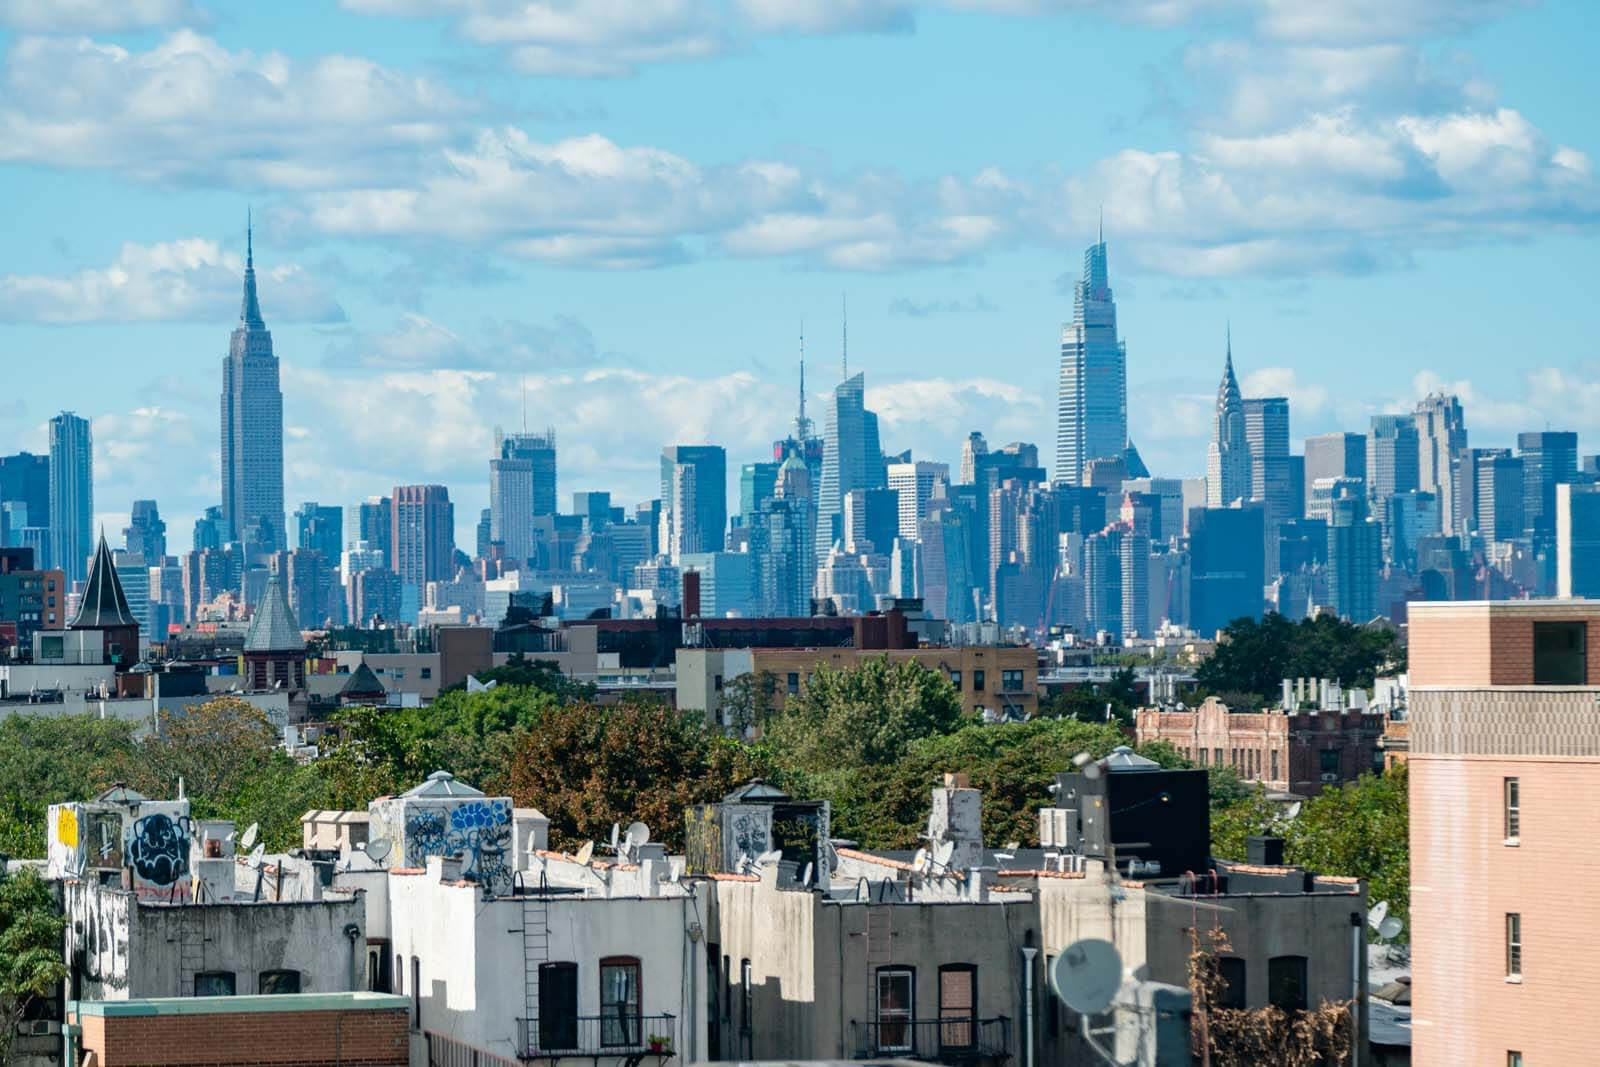 View of Manhattan from the Tiny Cupboard in Bushwick